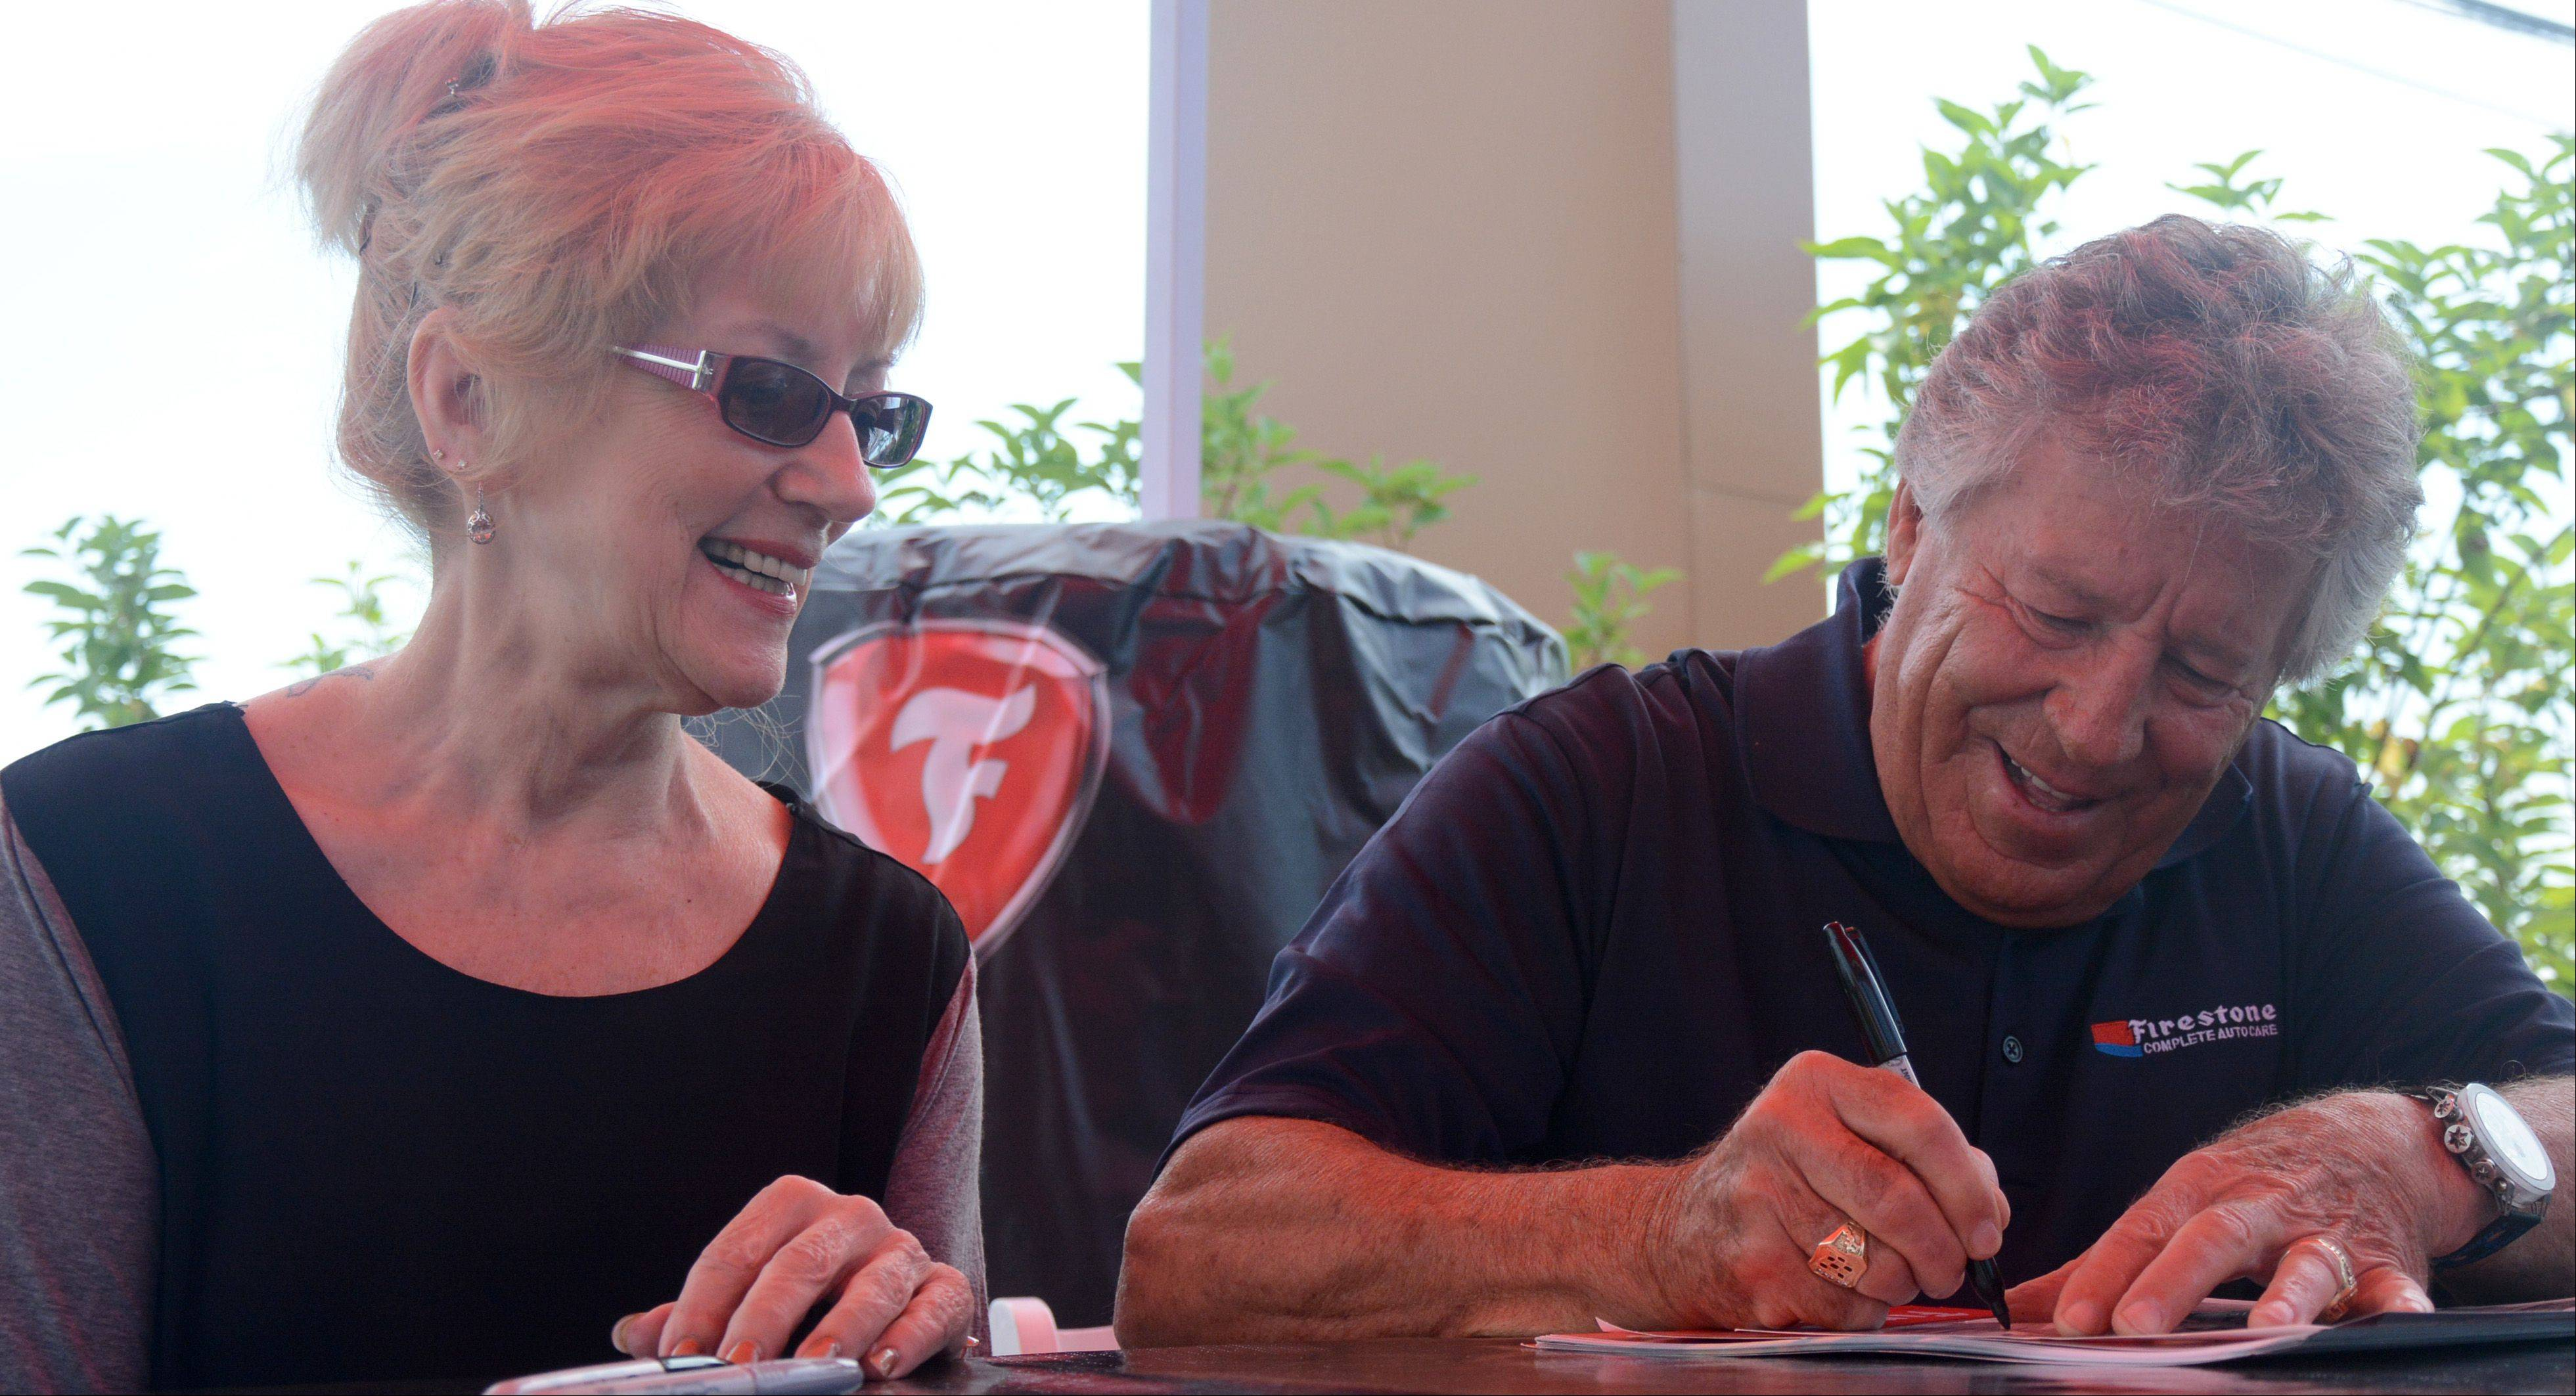 Auto racing legend Mario Andretti signs an autograph for Diane Sipple of Schaumburg on Friday at the opening of a new Firestone Complete Car Care in Palatine. Mann drove in from Wisconsin for the meet-and-greet with Andretti.